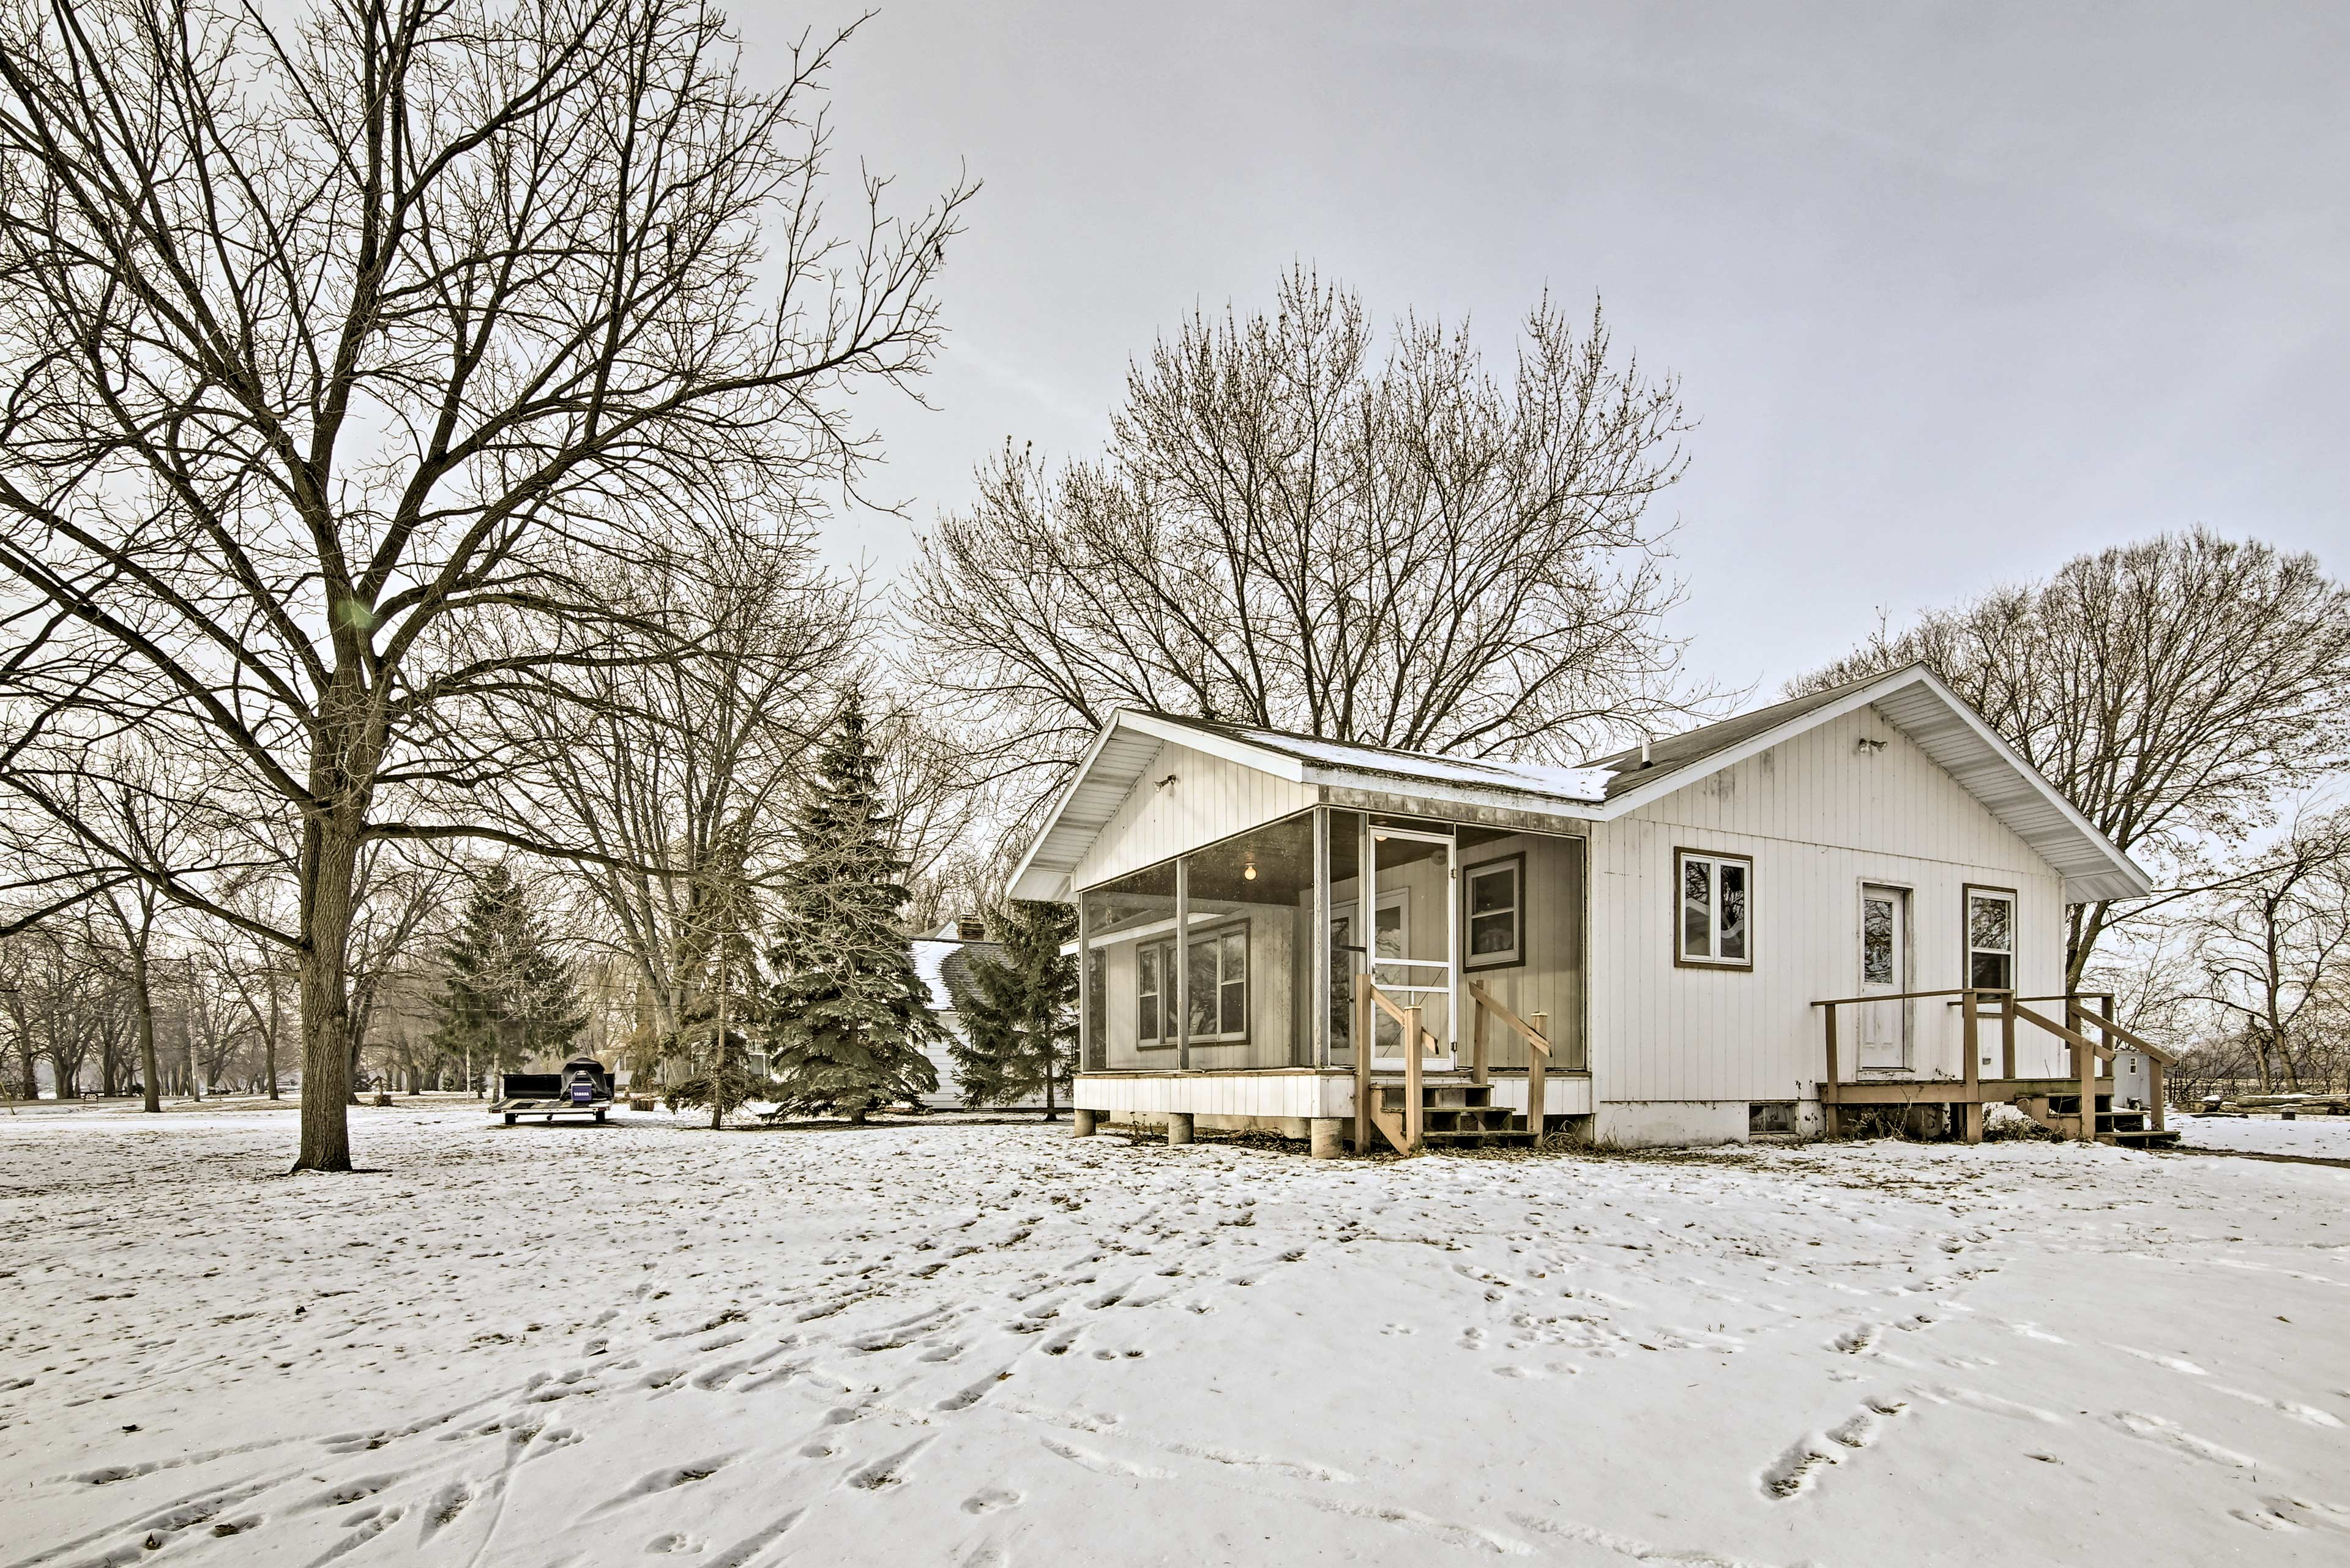 Take a trip to Lake Winnebago and stay at this vacation rental house.